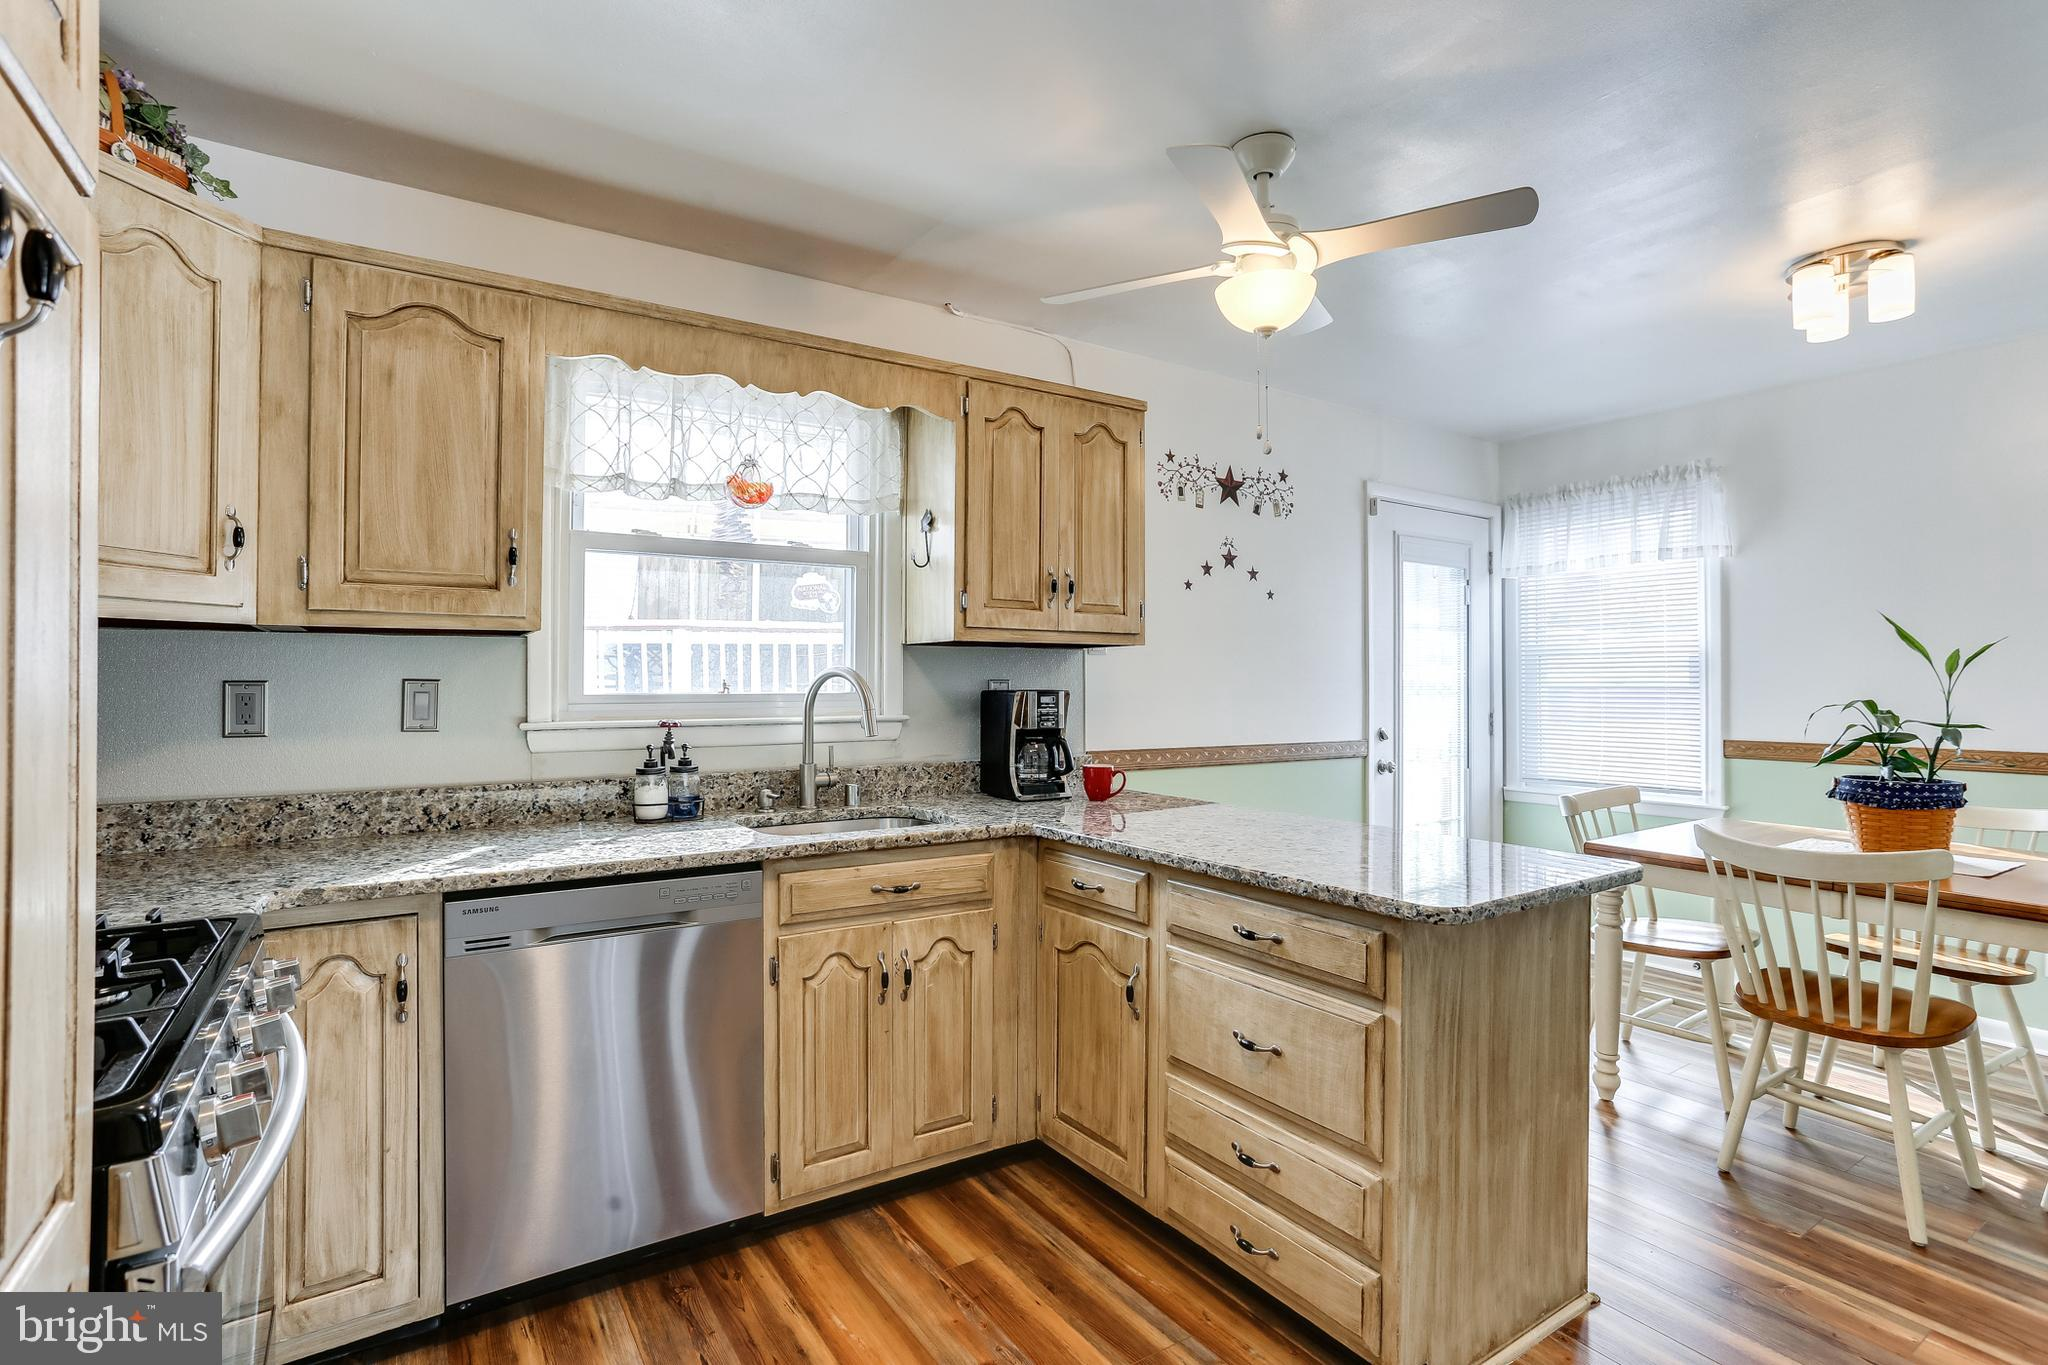 205 HAMPTON ROAD, LINTHICUM HEIGHTS, MD 21090